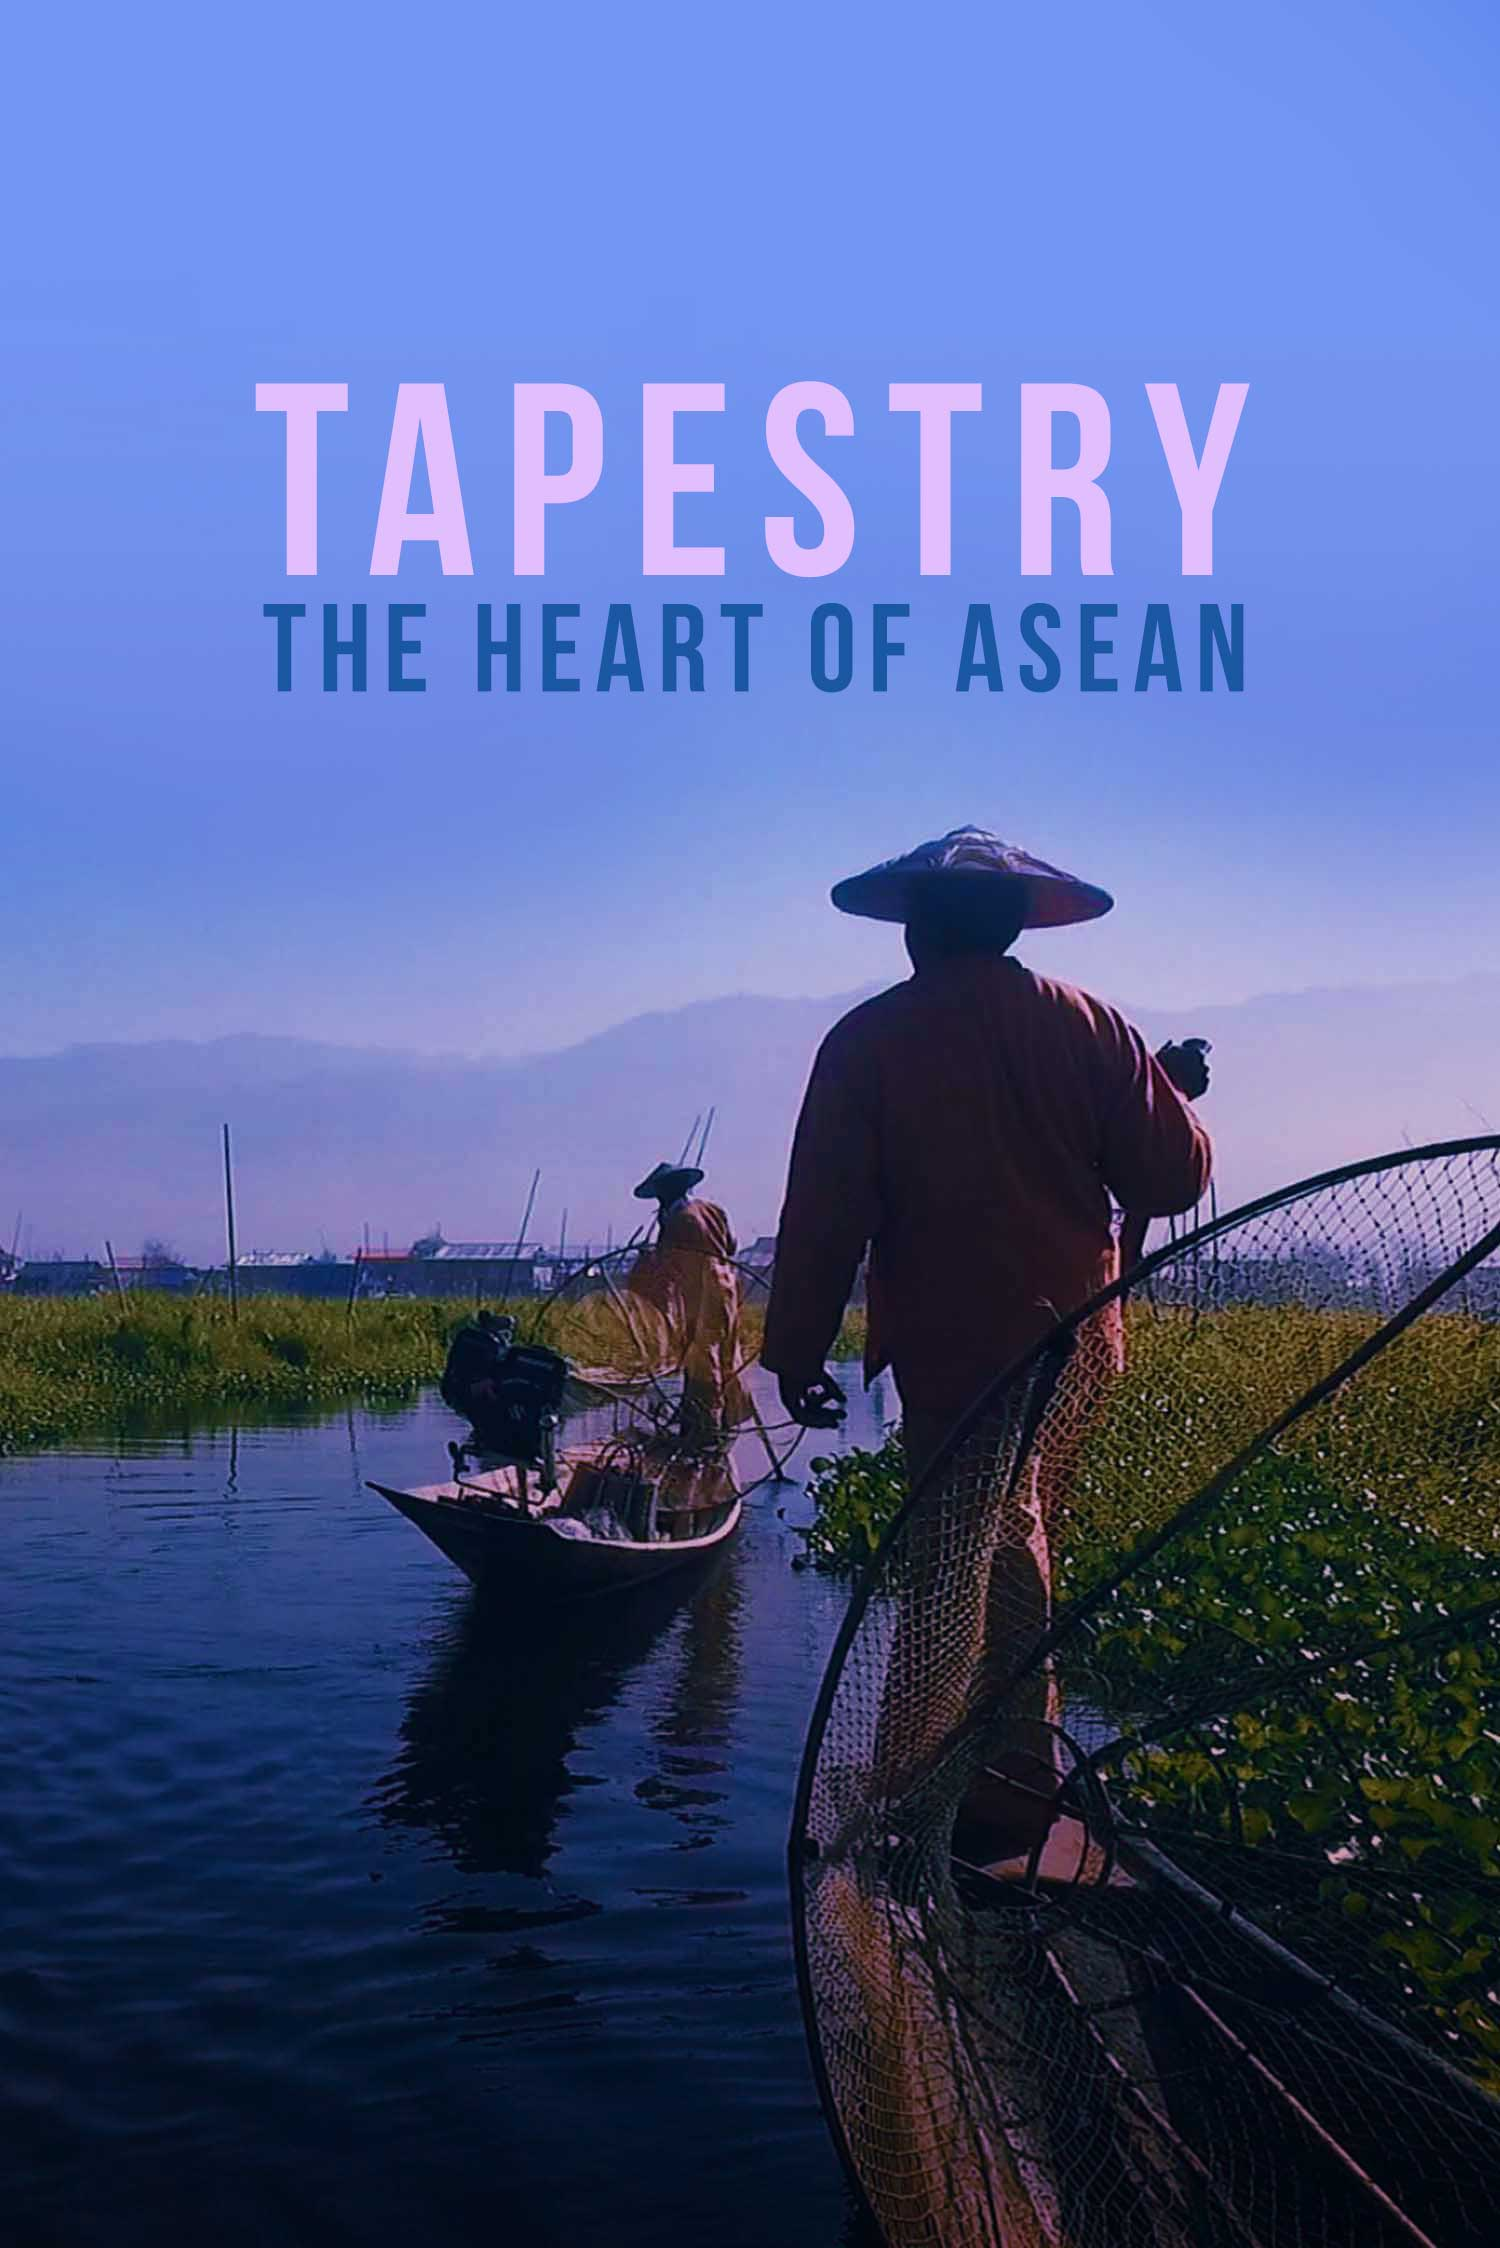 Tapestry: The Heart of ASEAN